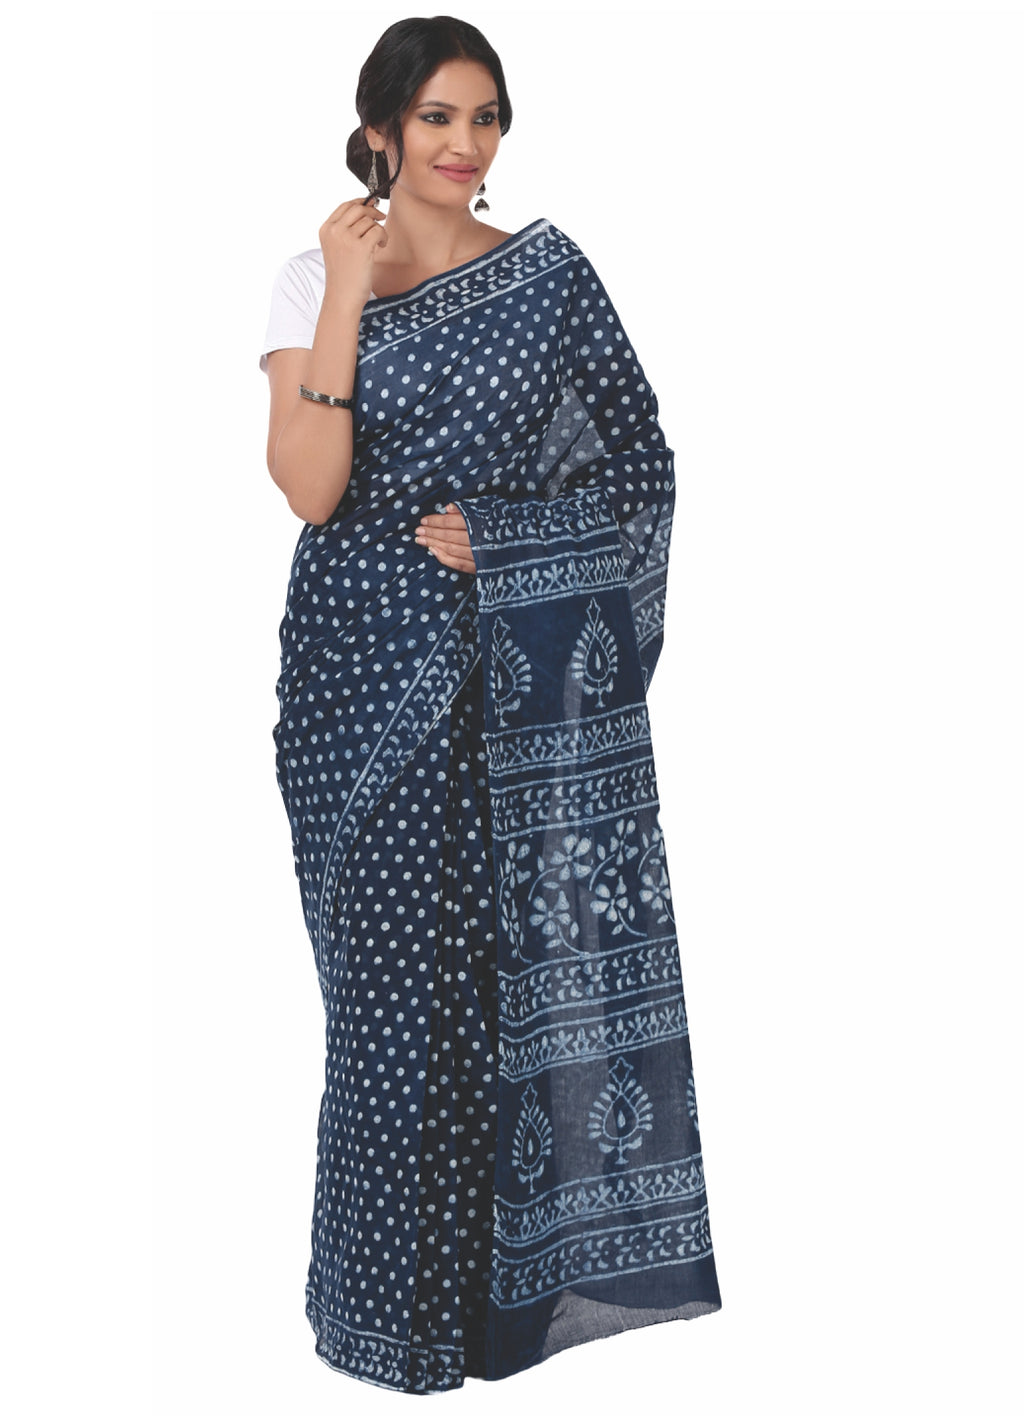 Indigo Dabu Hand Block Print Handcrafted Cotton Saree-Saree-Kalakari India-BAPASA0010-Cotton, Dabu, Geographical Indication, Hand Blocks, Hand Crafted, Heritage Prints, Indigo, Natural Dyes, Sarees, Sustainable Fabrics-[Linen,Ethnic,wear,Fashionista,Handloom,Handicraft,Indigo,blockprint,block,print,Cotton,Chanderi,Blue, latest,classy,party,bollywood,trendy,summer,style,traditional,formal,elegant,unique,style,hand,block,print, dabu,booti,gift,present,glamorous,affordable,collectible,Sari,Saree,pr